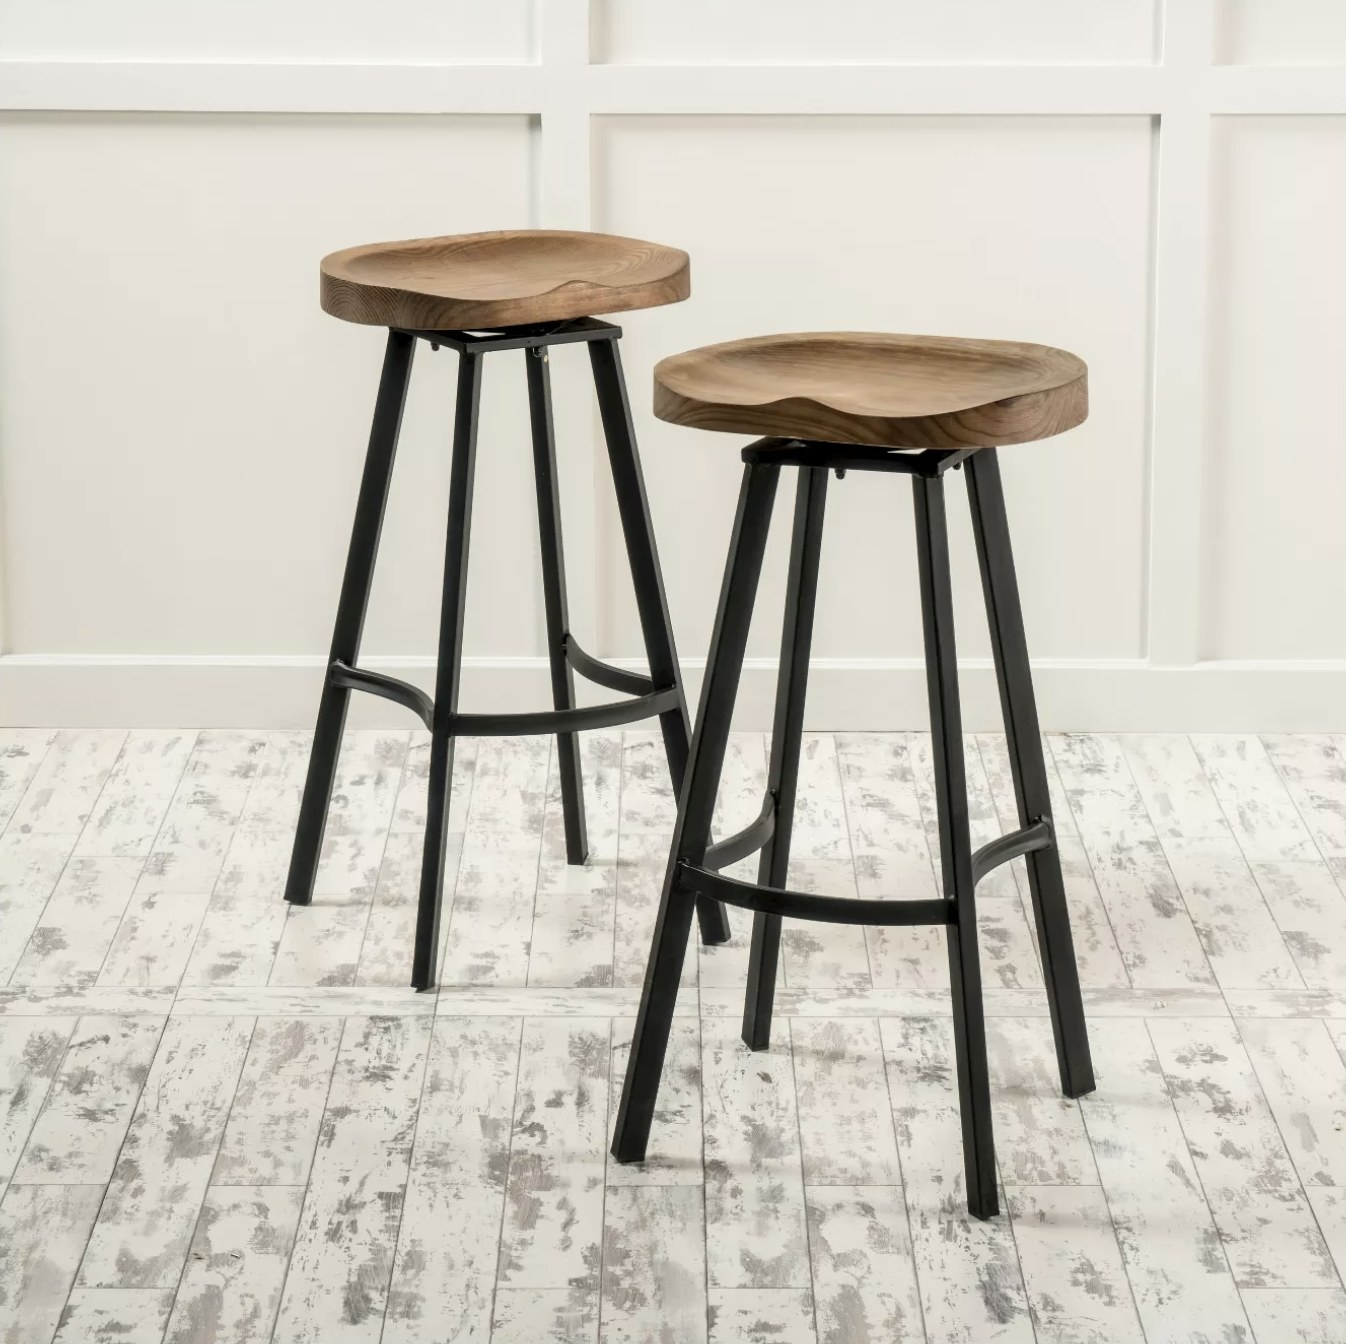 The two wooden bar stools with black legs